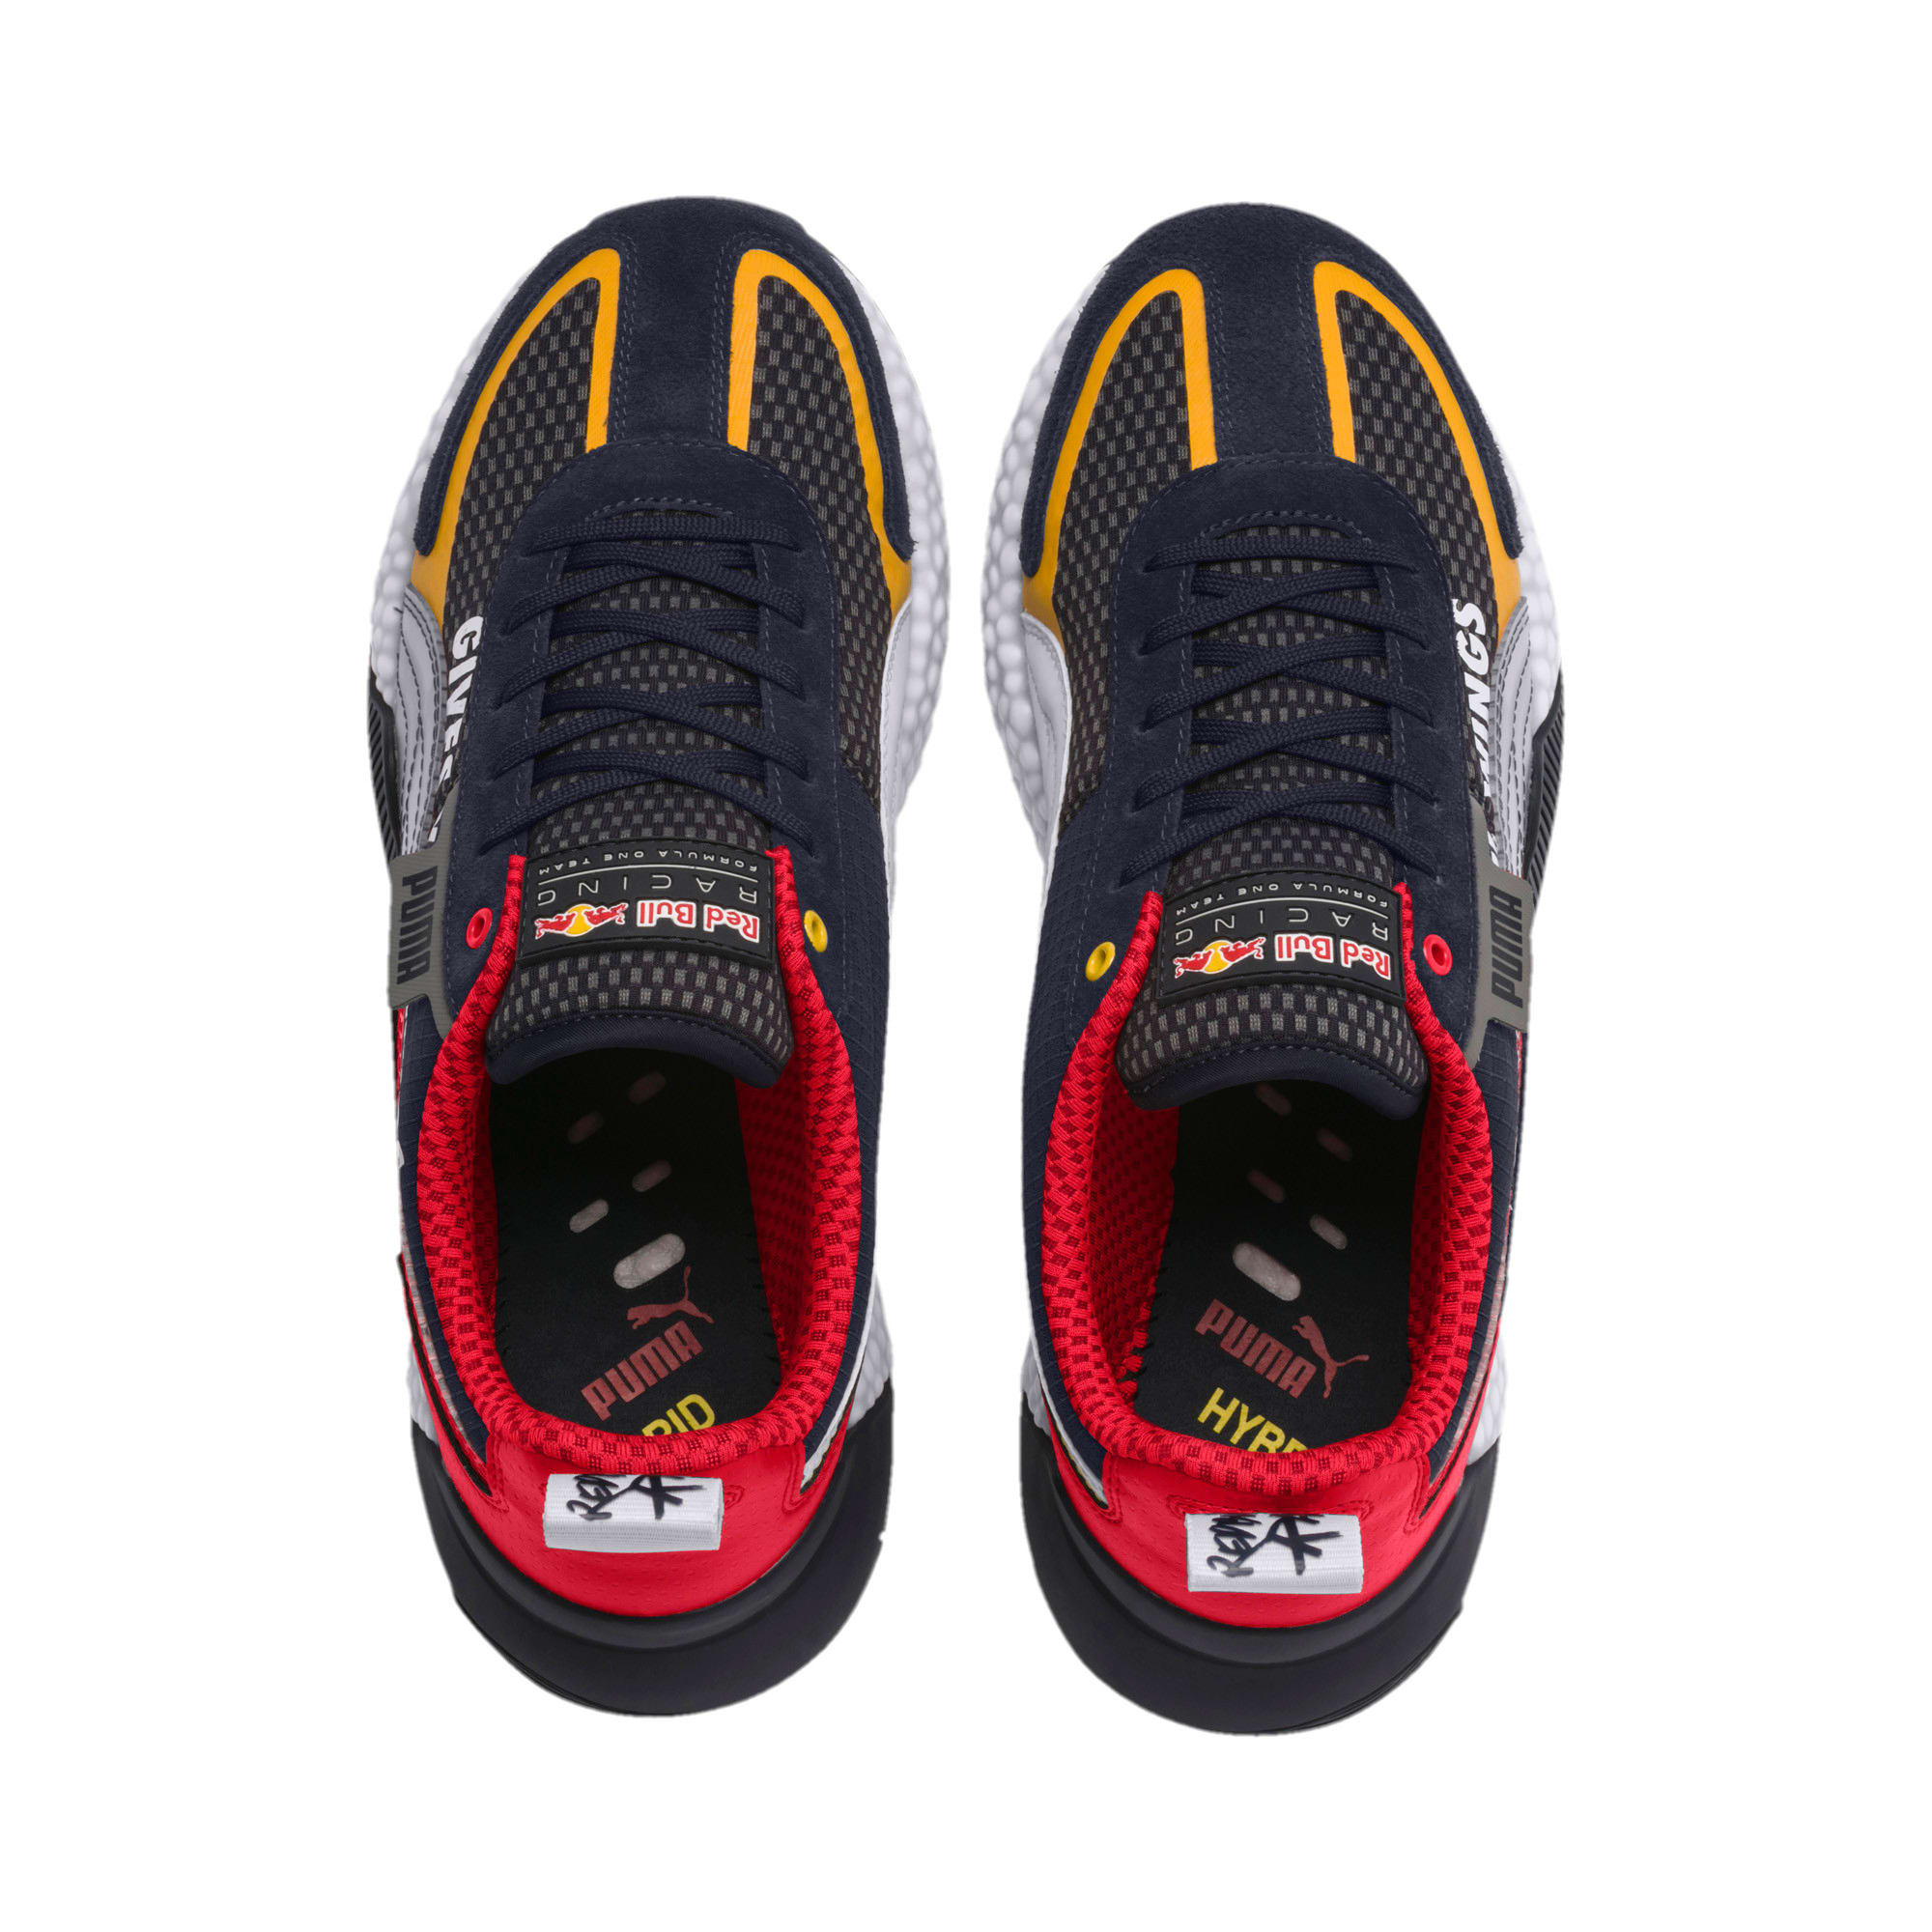 Thumbnail 8 of Red Bull Racing Speed HYBRID Men's Trainers, NIGHT SKY-White-Chinese Red, medium-IND